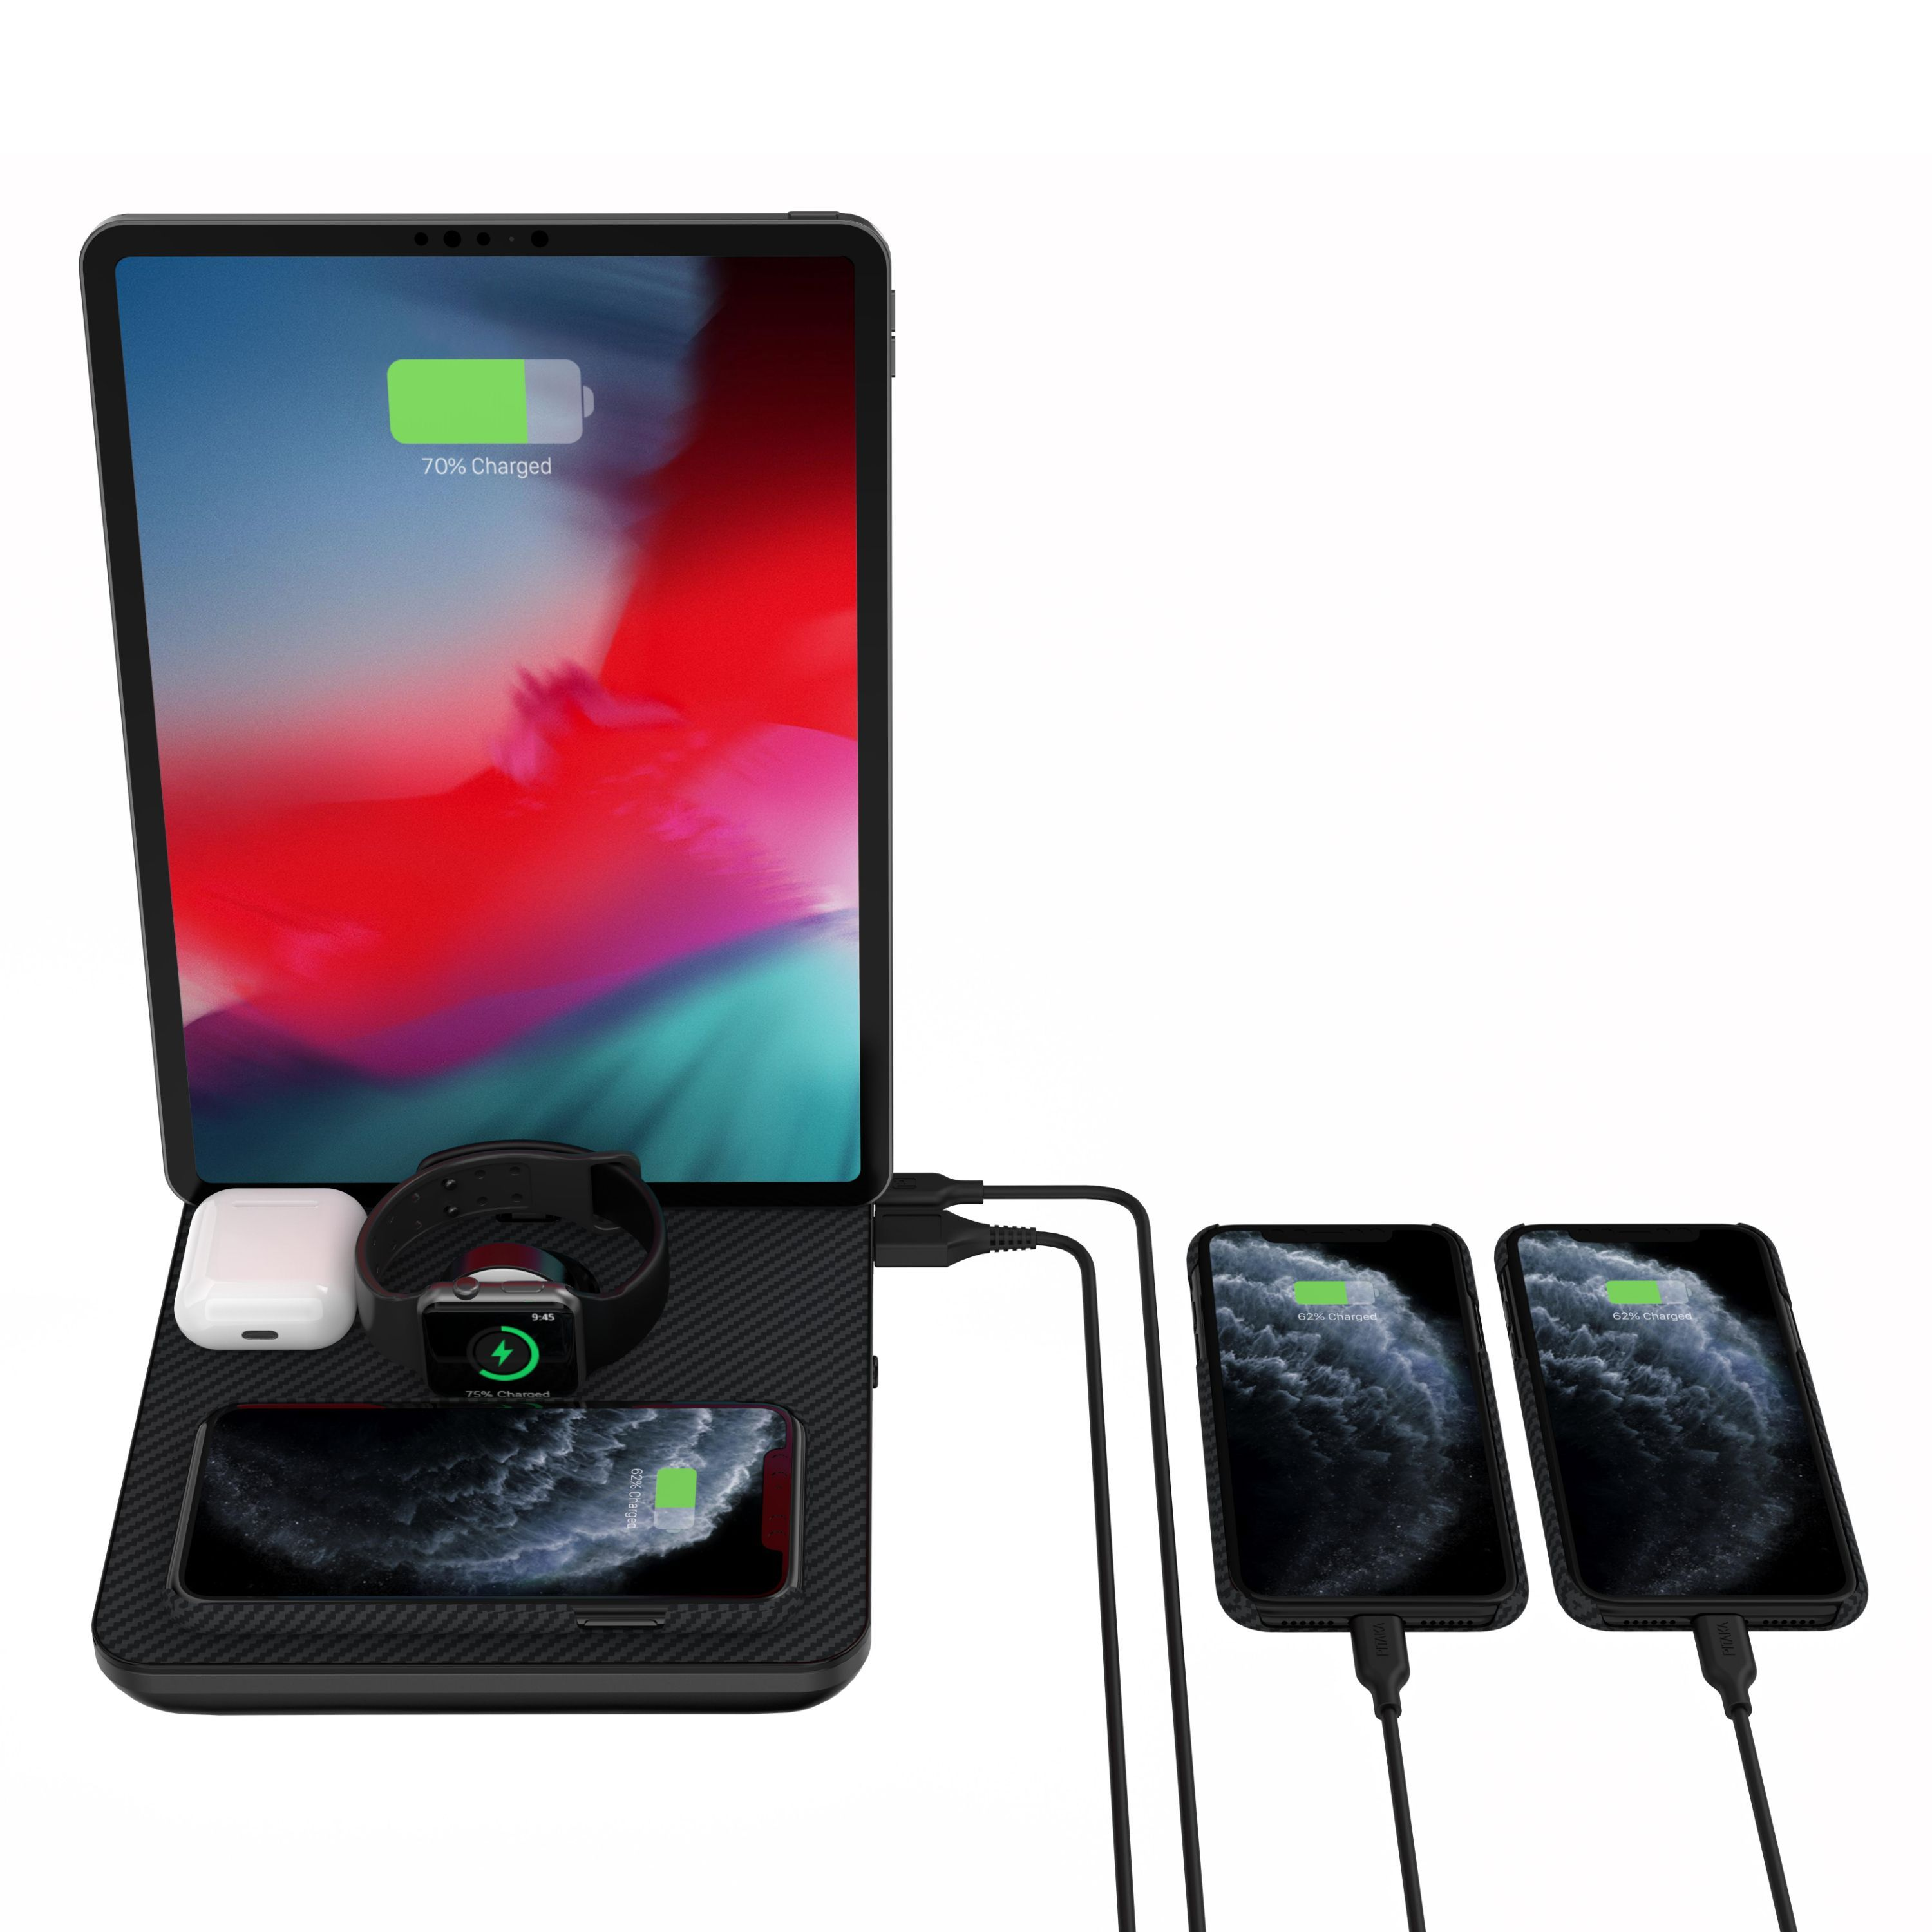 25 Best Rated Innovative Ipad Accessories To Get In 2021 10